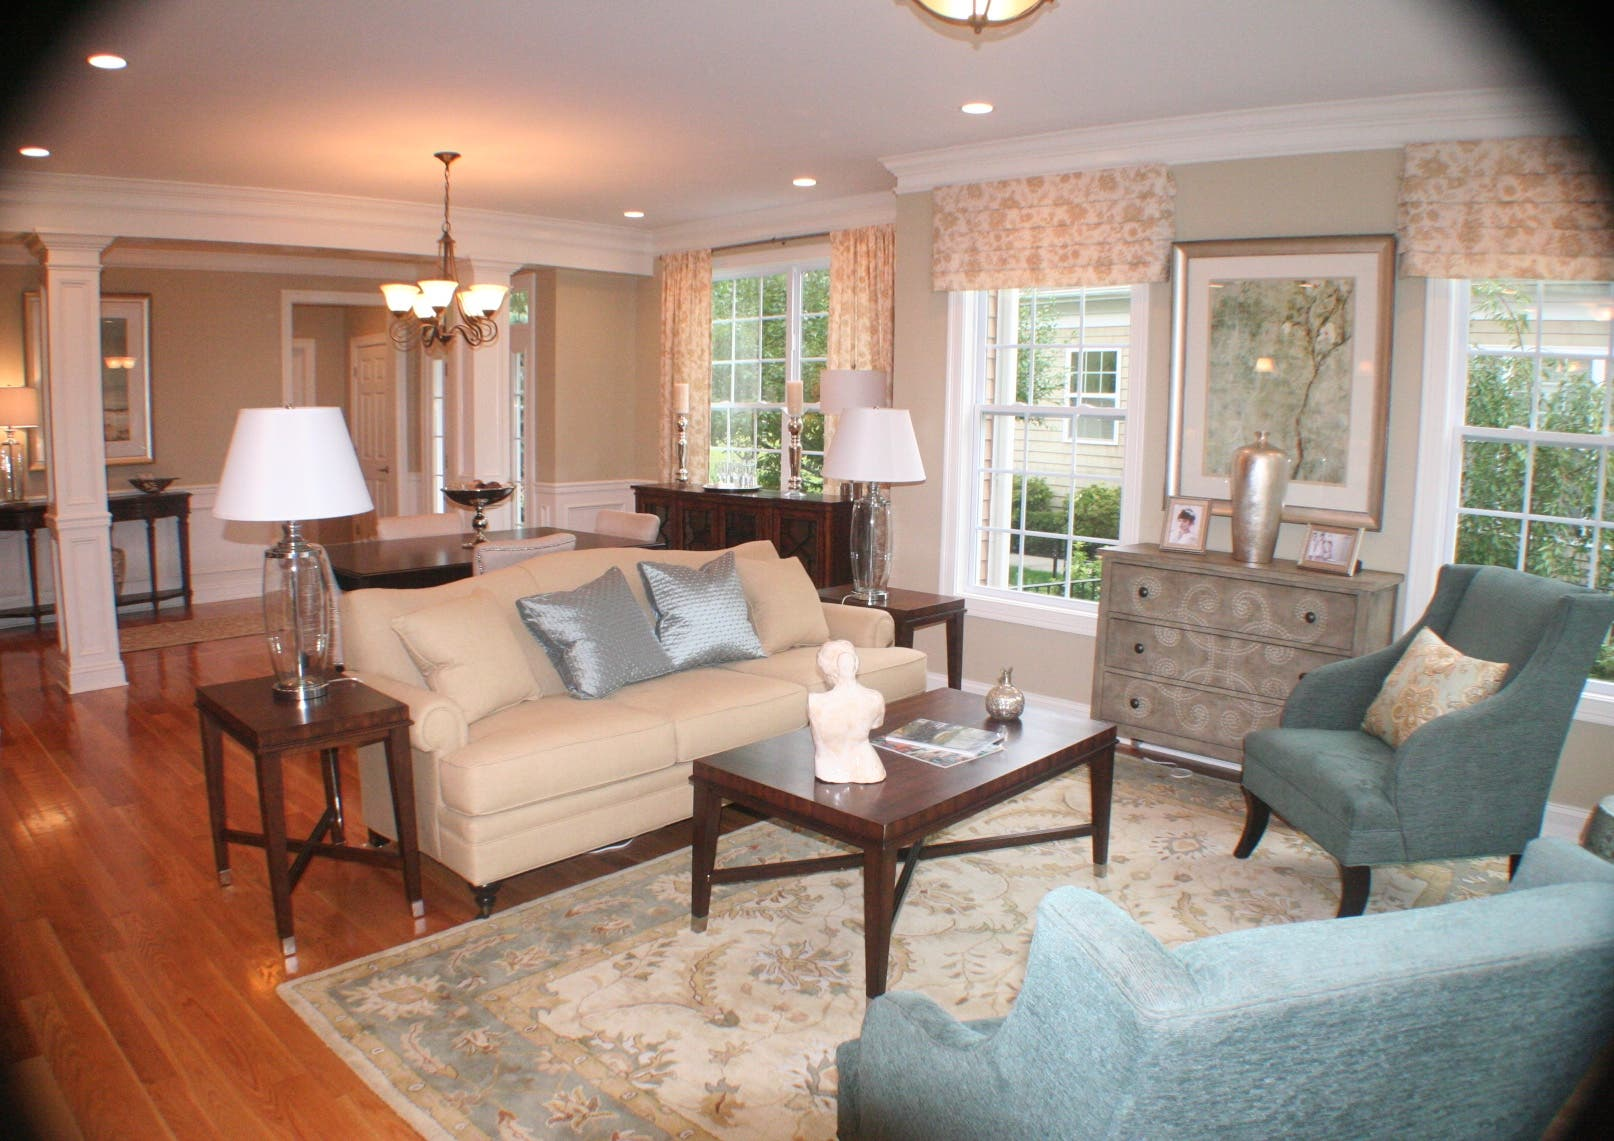 Luxury Townhomes Litchfield CT Offer First Floor Master Bedroom ...